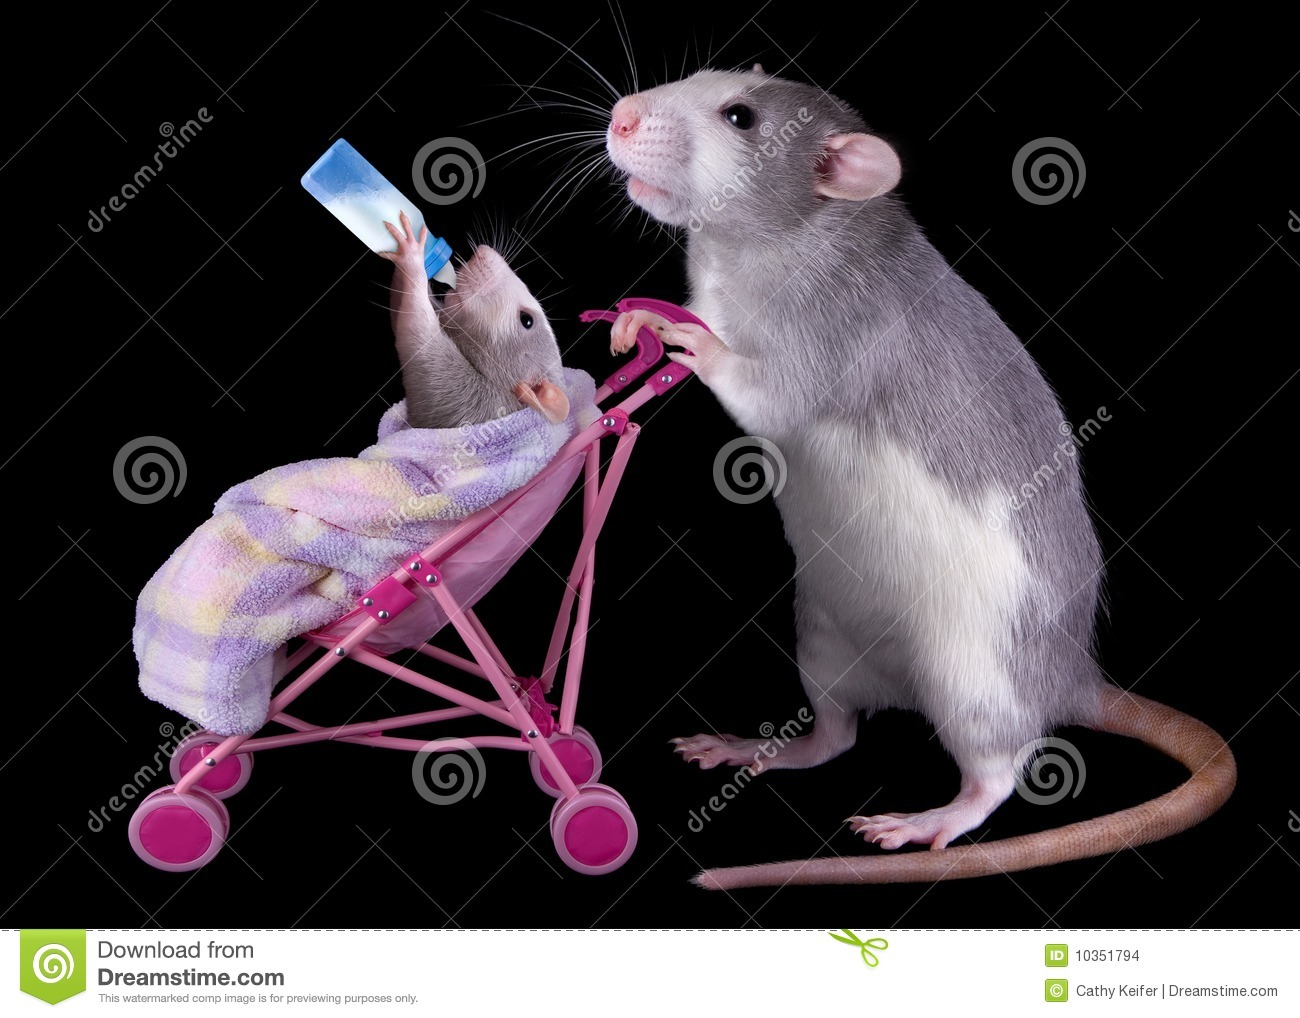 ... her baby in a stroller while the baby is drinking milk from a bottle